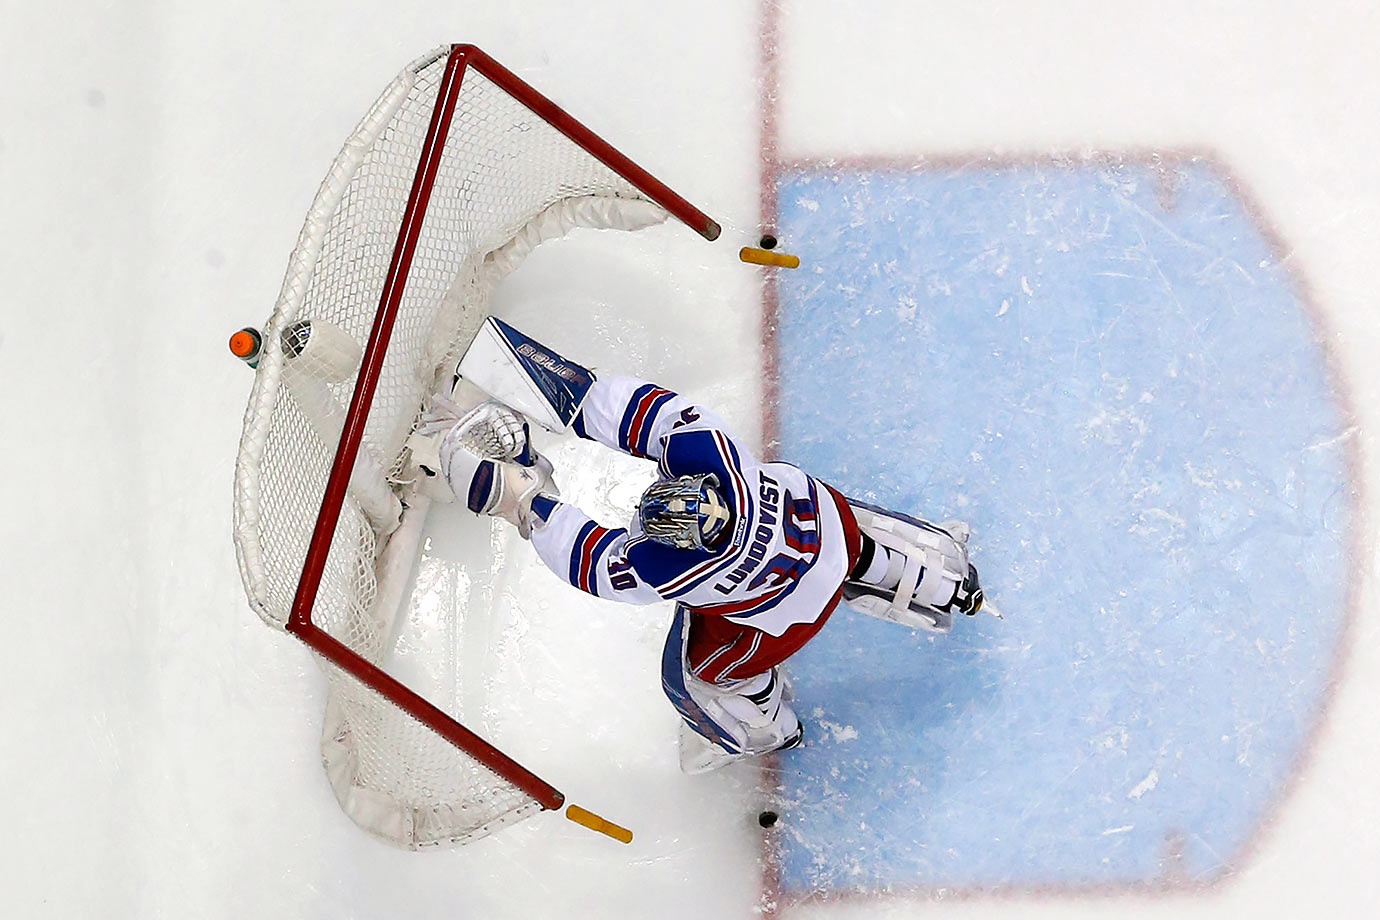 New York Rangers goalie Henrik Lundqvist pushes over the goal to force a stoppage of play after being shaken up in a collision with teammate Ryan McDonagh during the second period of a game against the Pittsburgh Penguins in Pittsburgh.